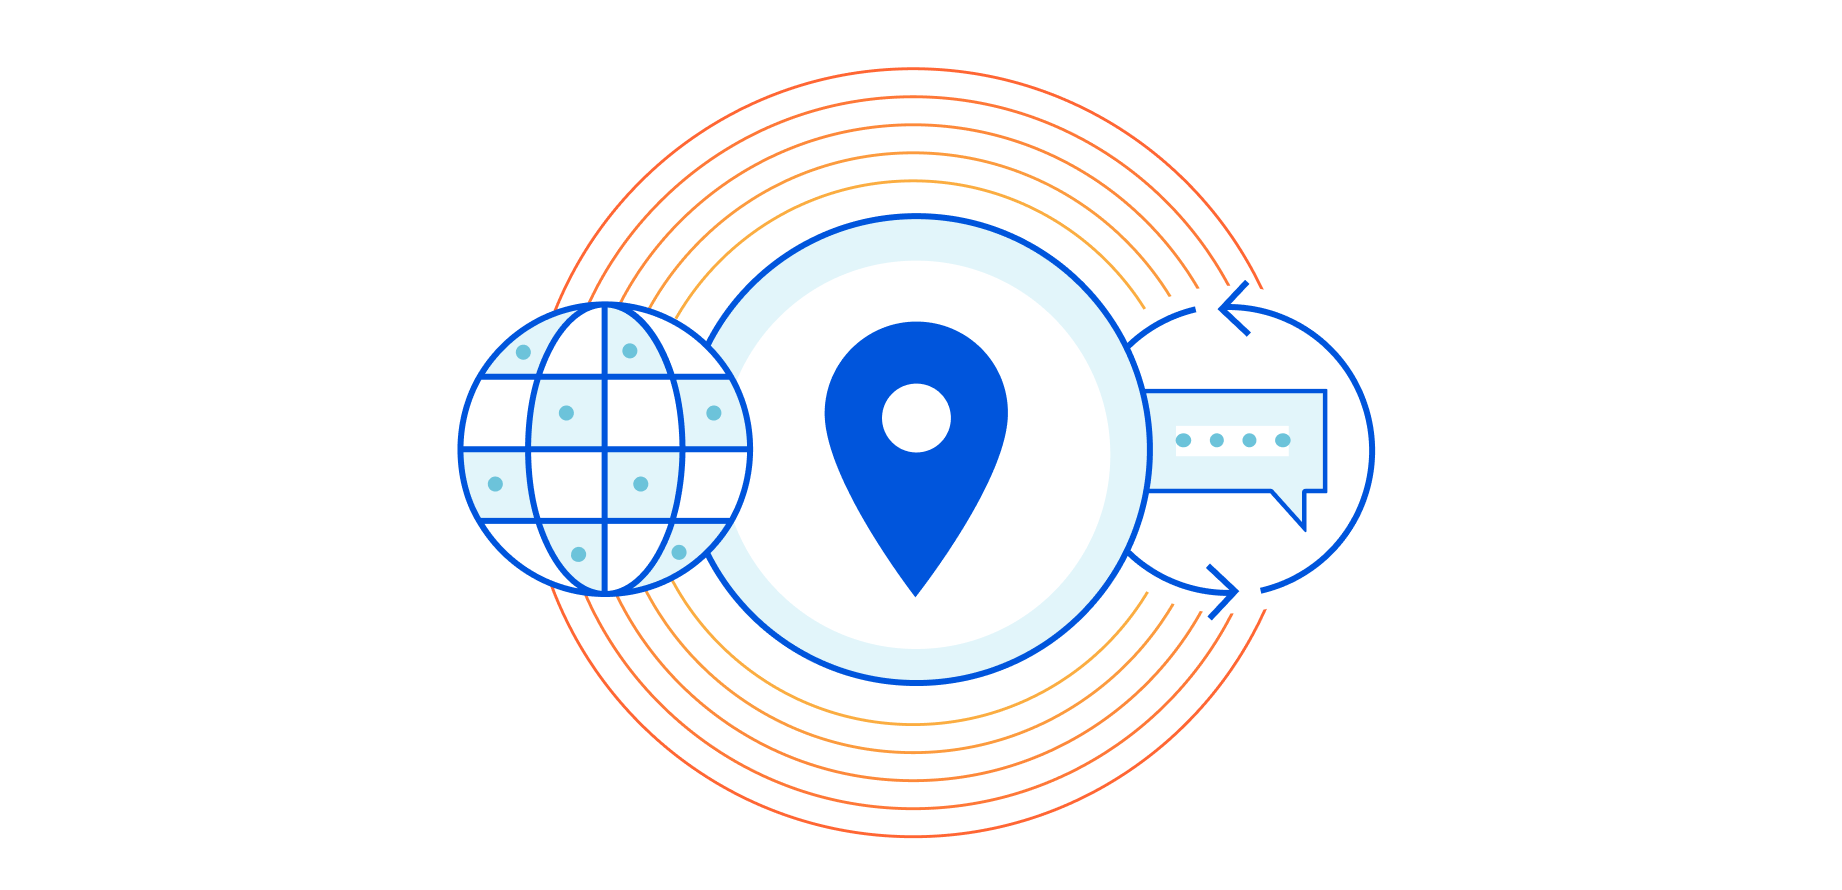 Location-based personalization at the edge with Cloudflare Workers